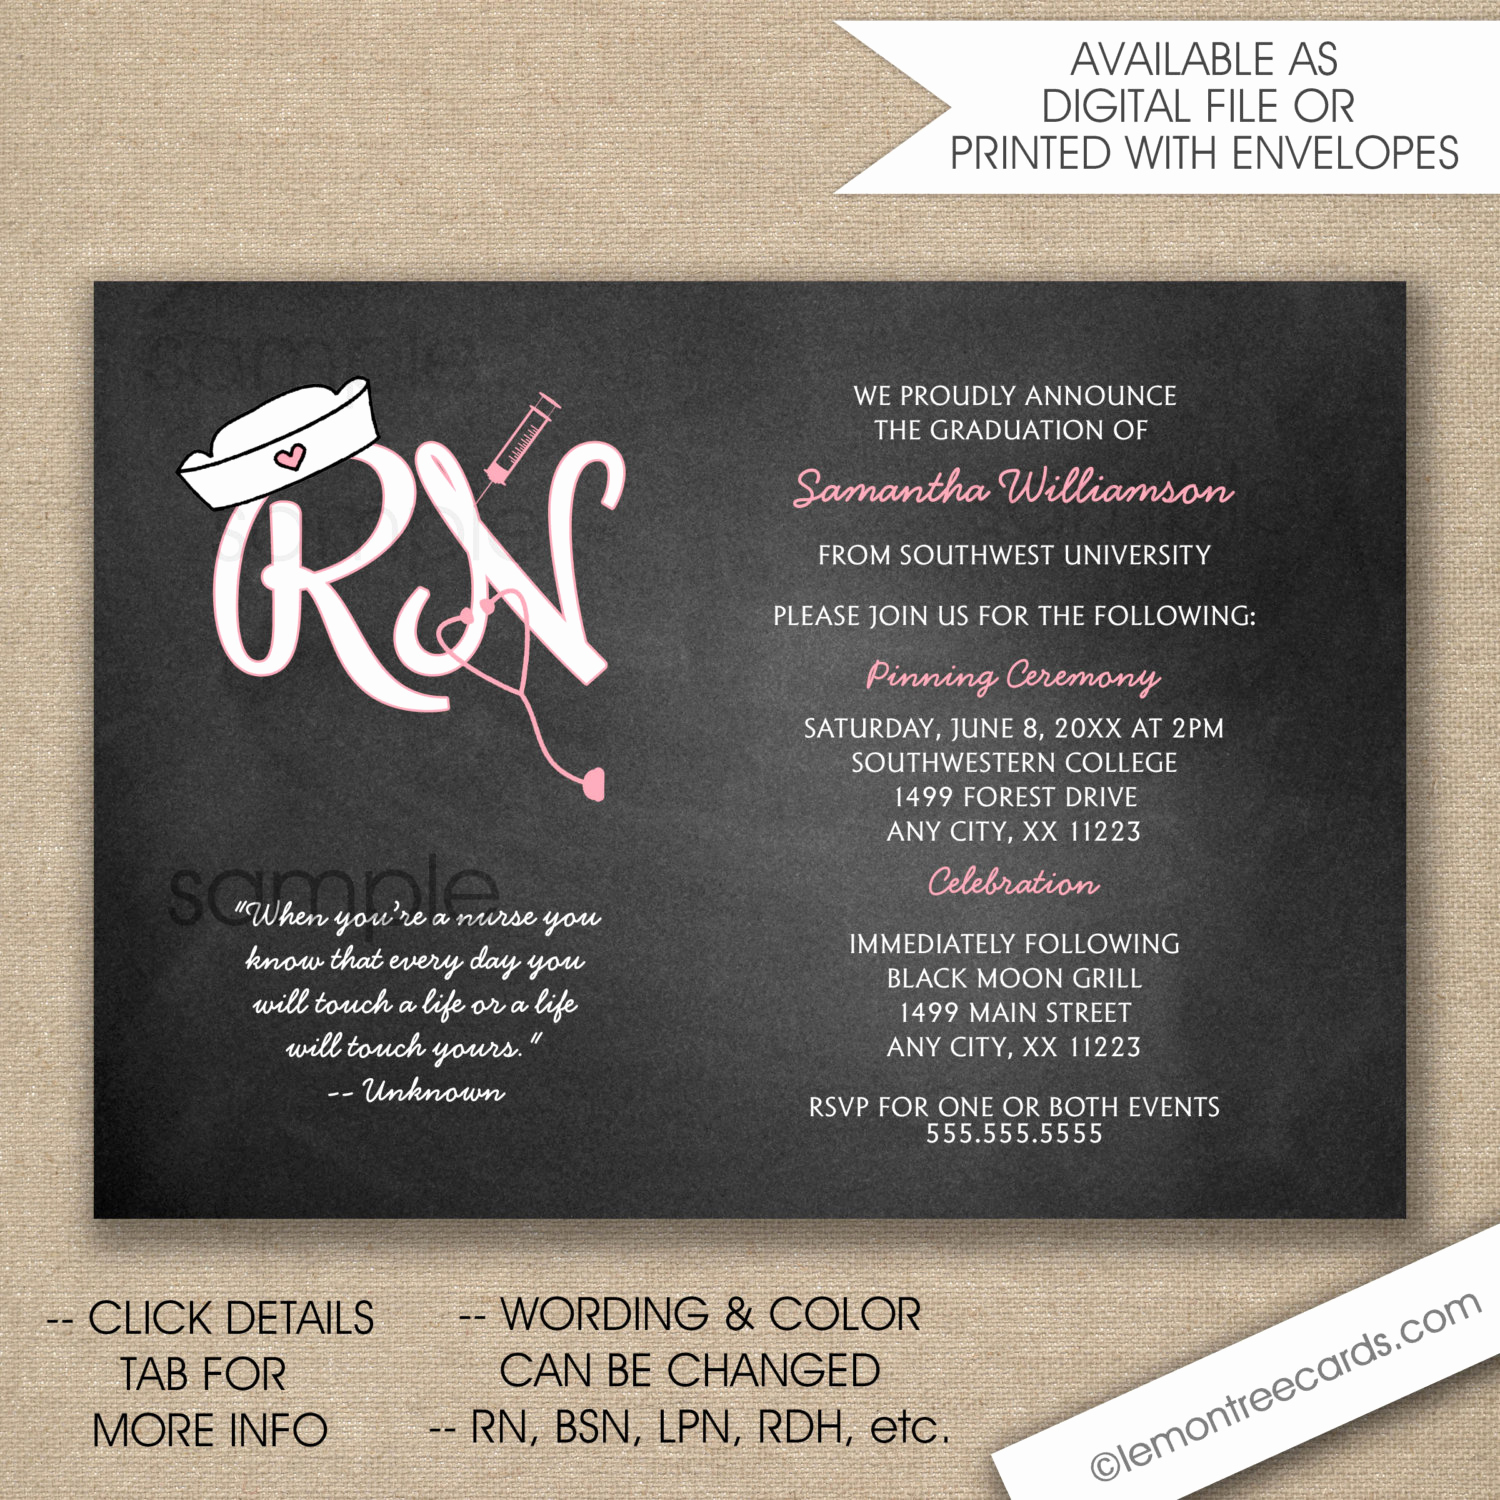 Nursing Graduation Invitation Templates Free Inspirational Rn Nurse Pinning Ceremony Invitations Free Shipping Digital